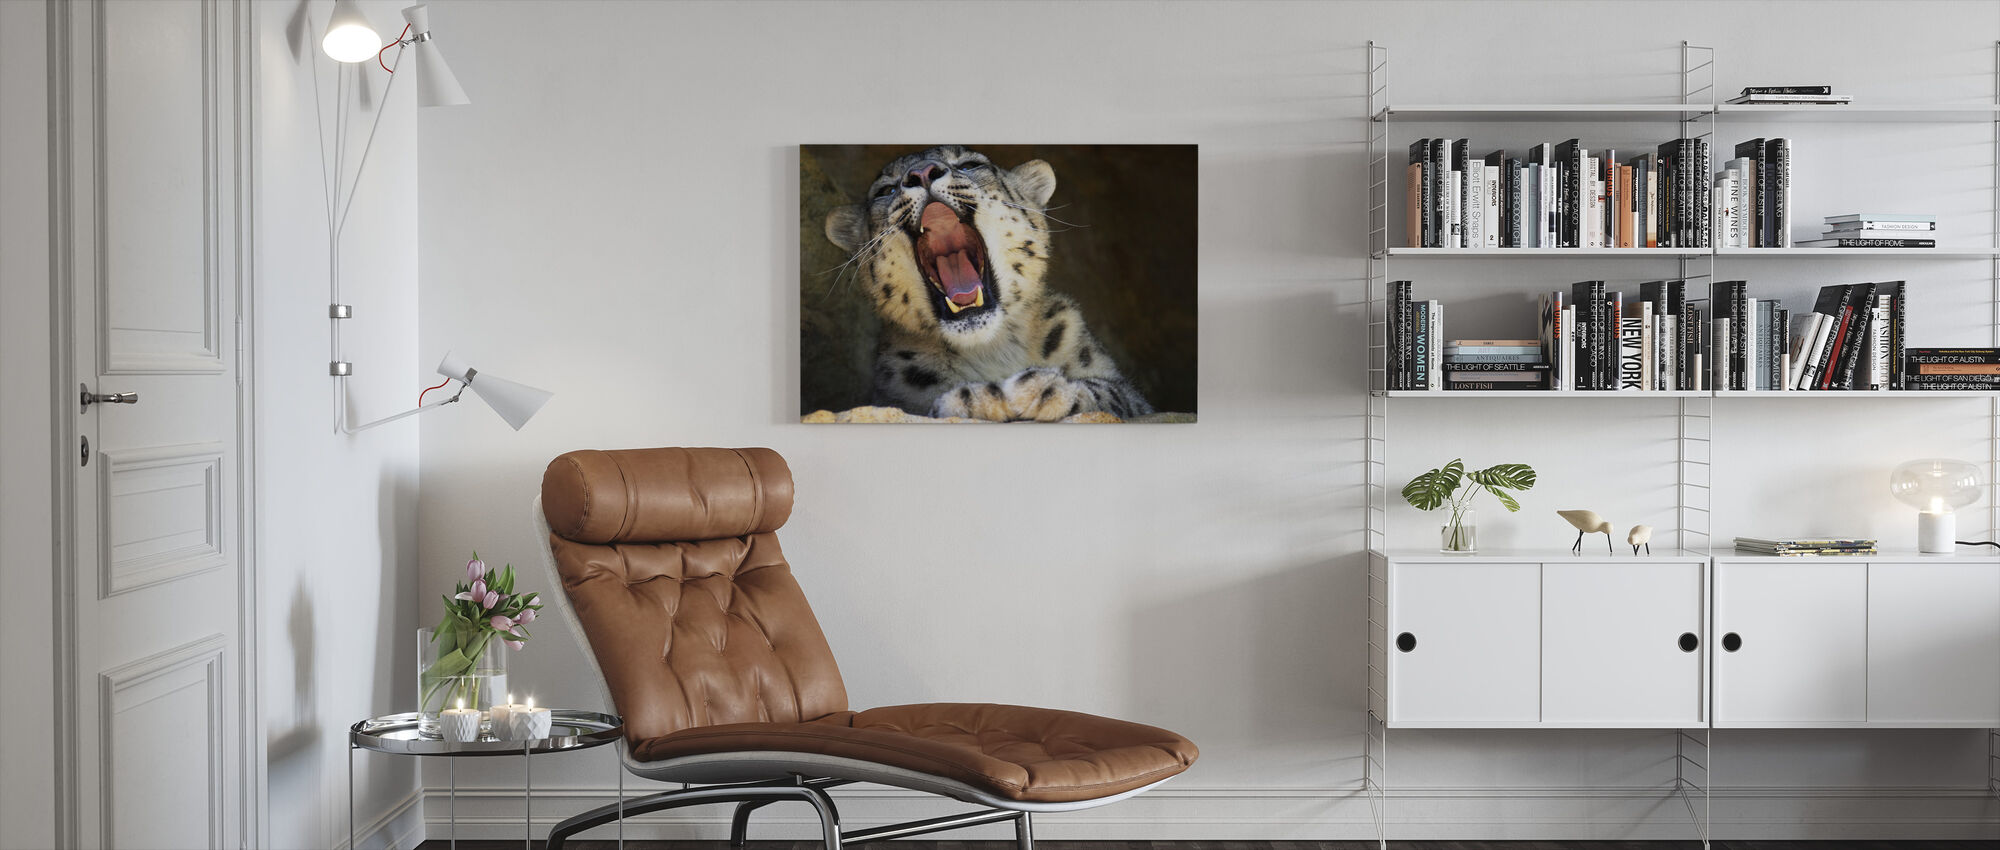 Tired Cat - Canvas print - Living Room